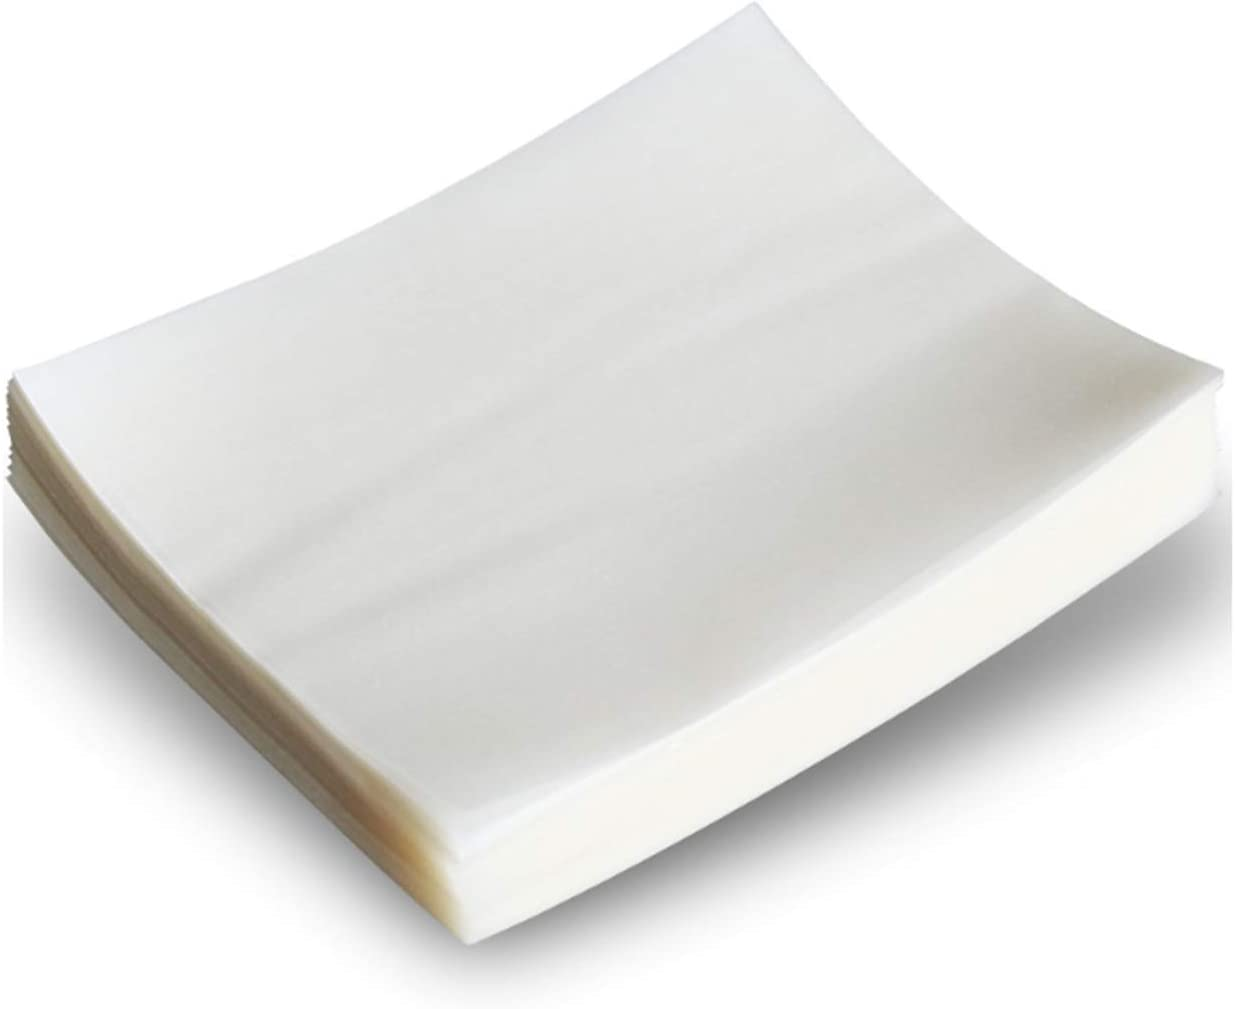 500 Sheets Candy transfer paper/Edible Rice Paper- Glutinous Rice Paperand Chocolate Making/Candy Cake DIY Edible Paper 3.15 × 4.53inches (8 × 11.5 cm)